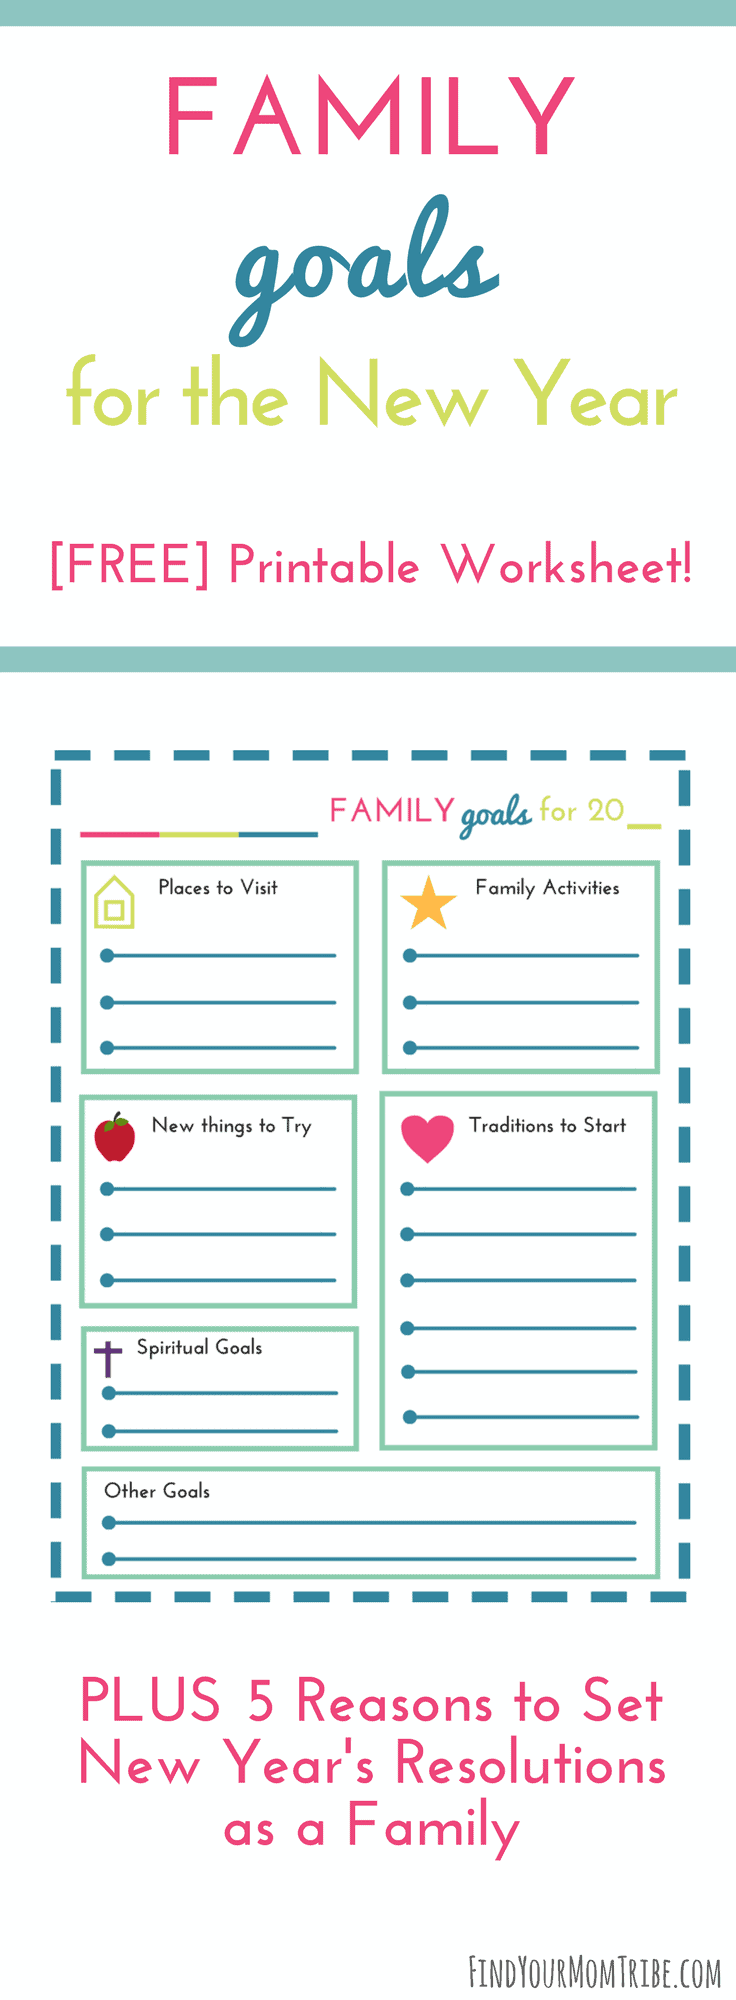 A great goal setting worksheet to set you up for a successful year.